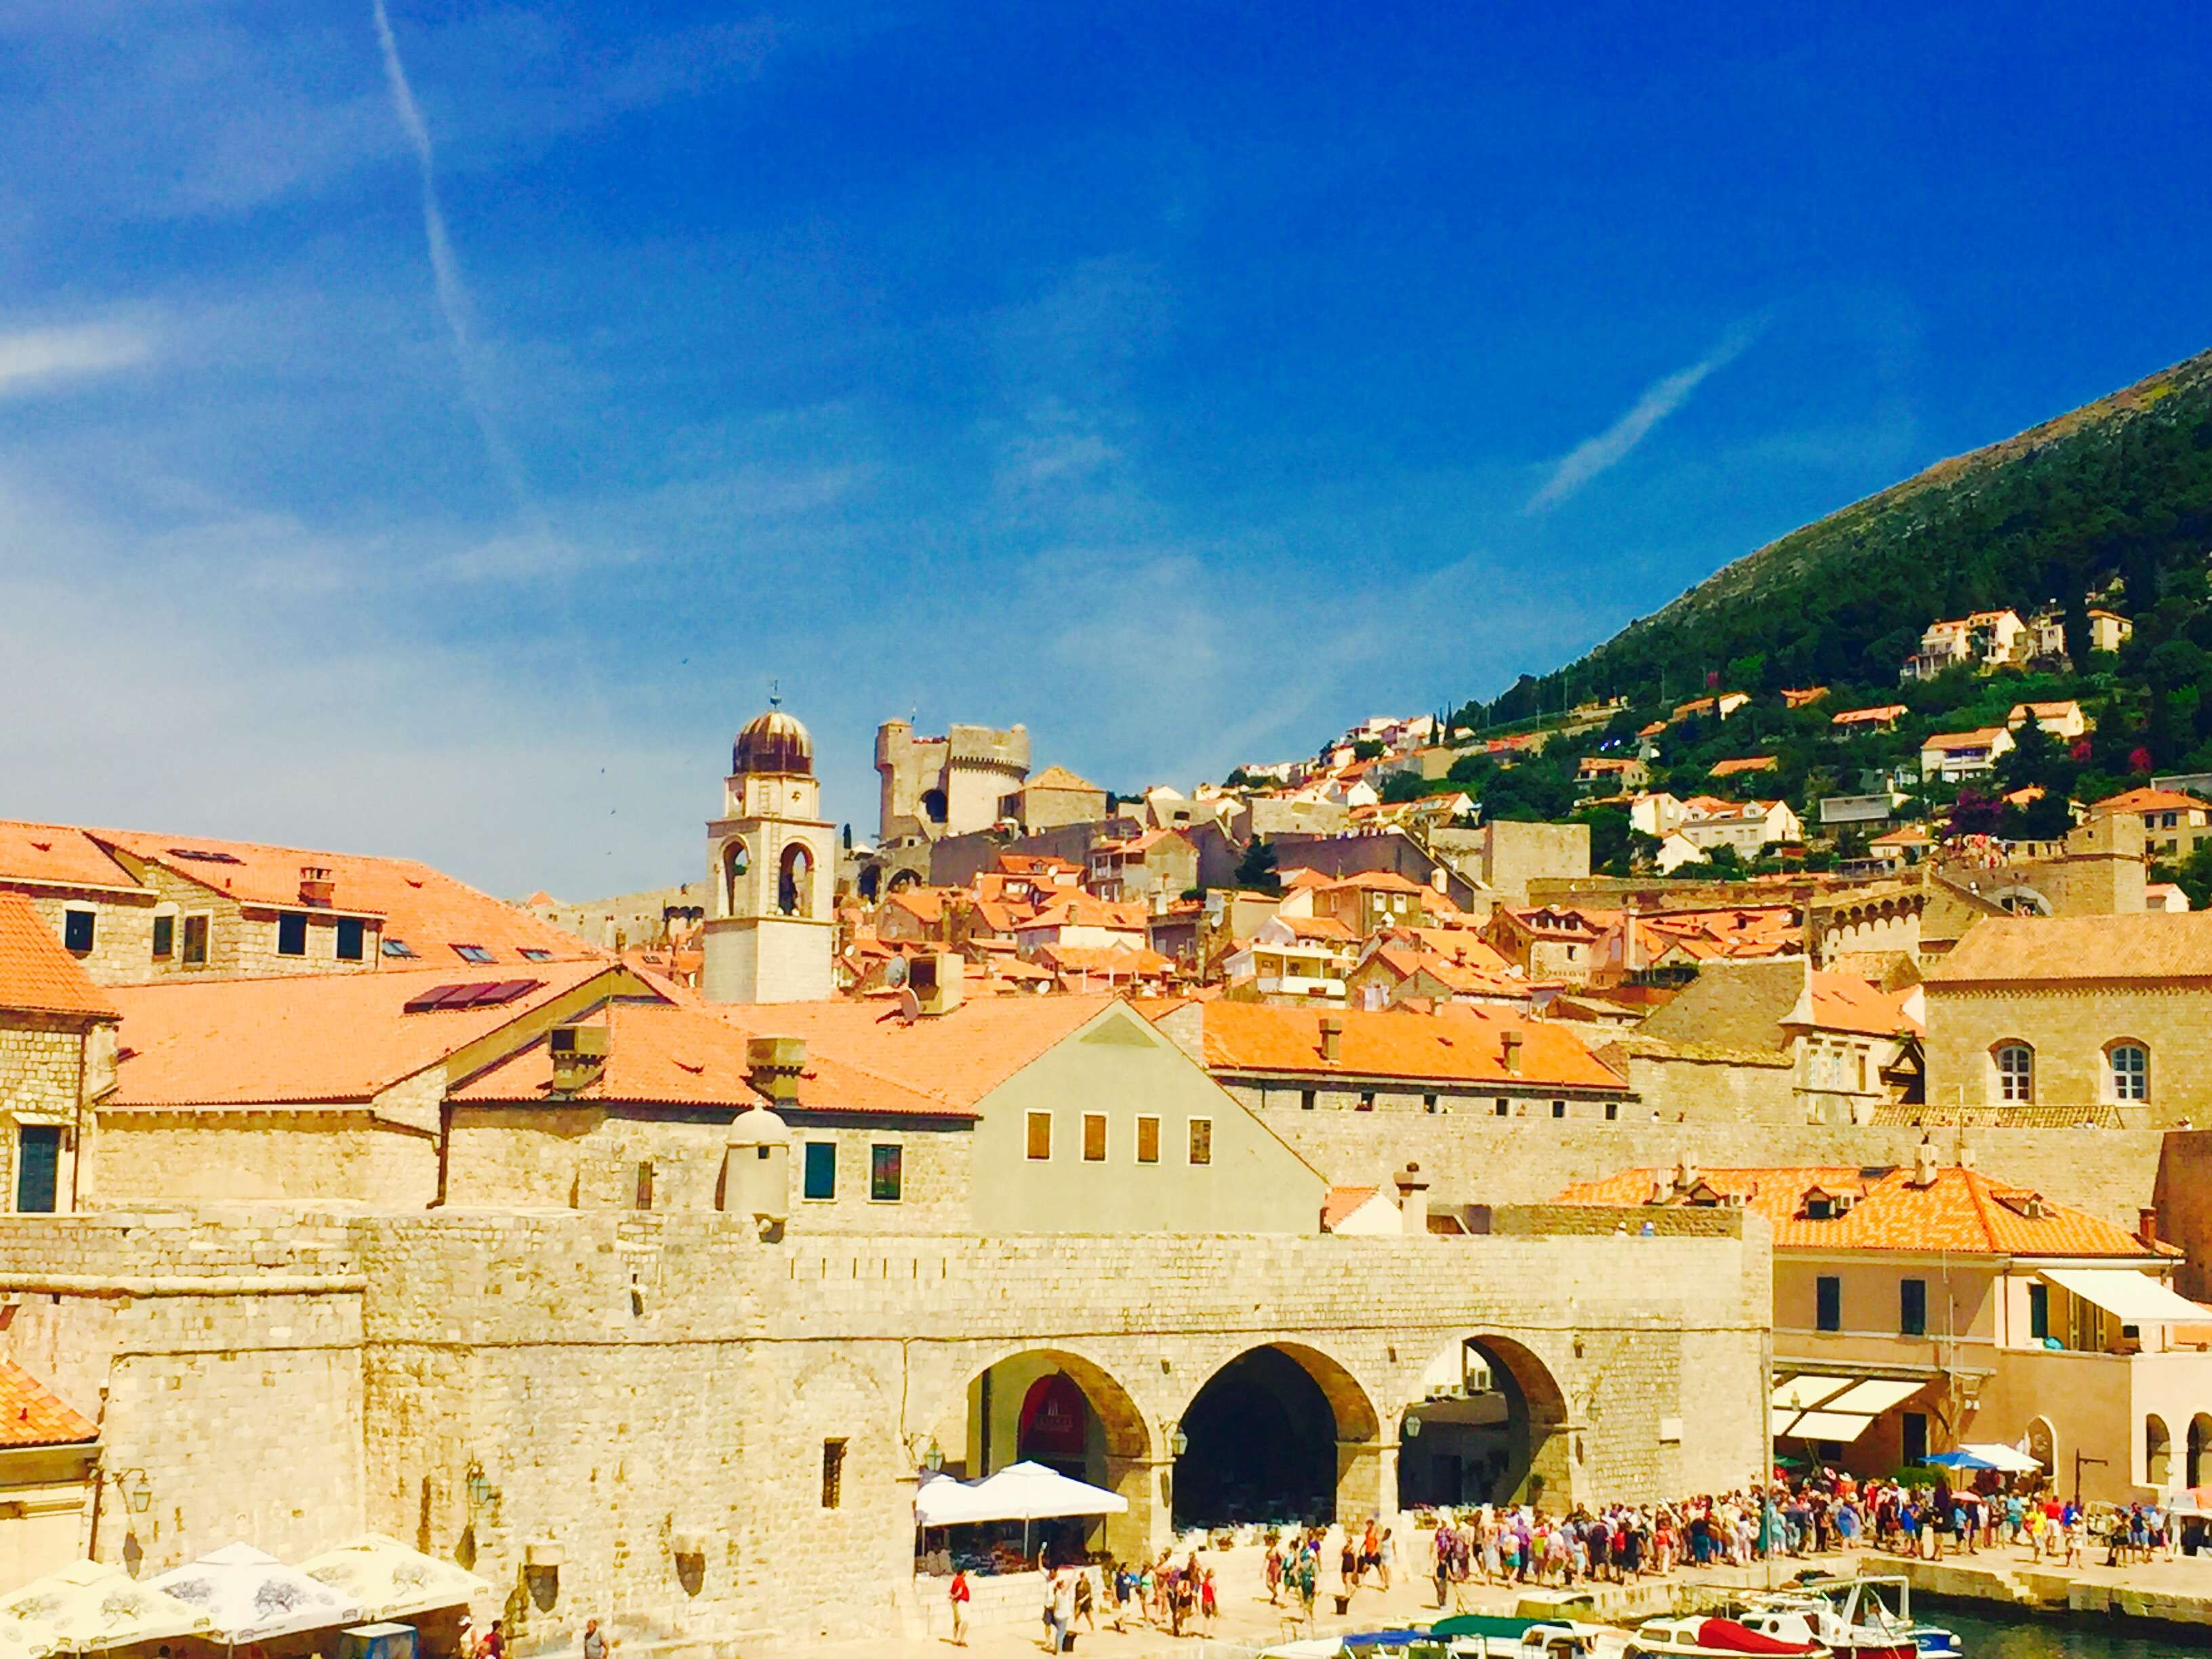 Sight: The historic city centre Dubrovnik